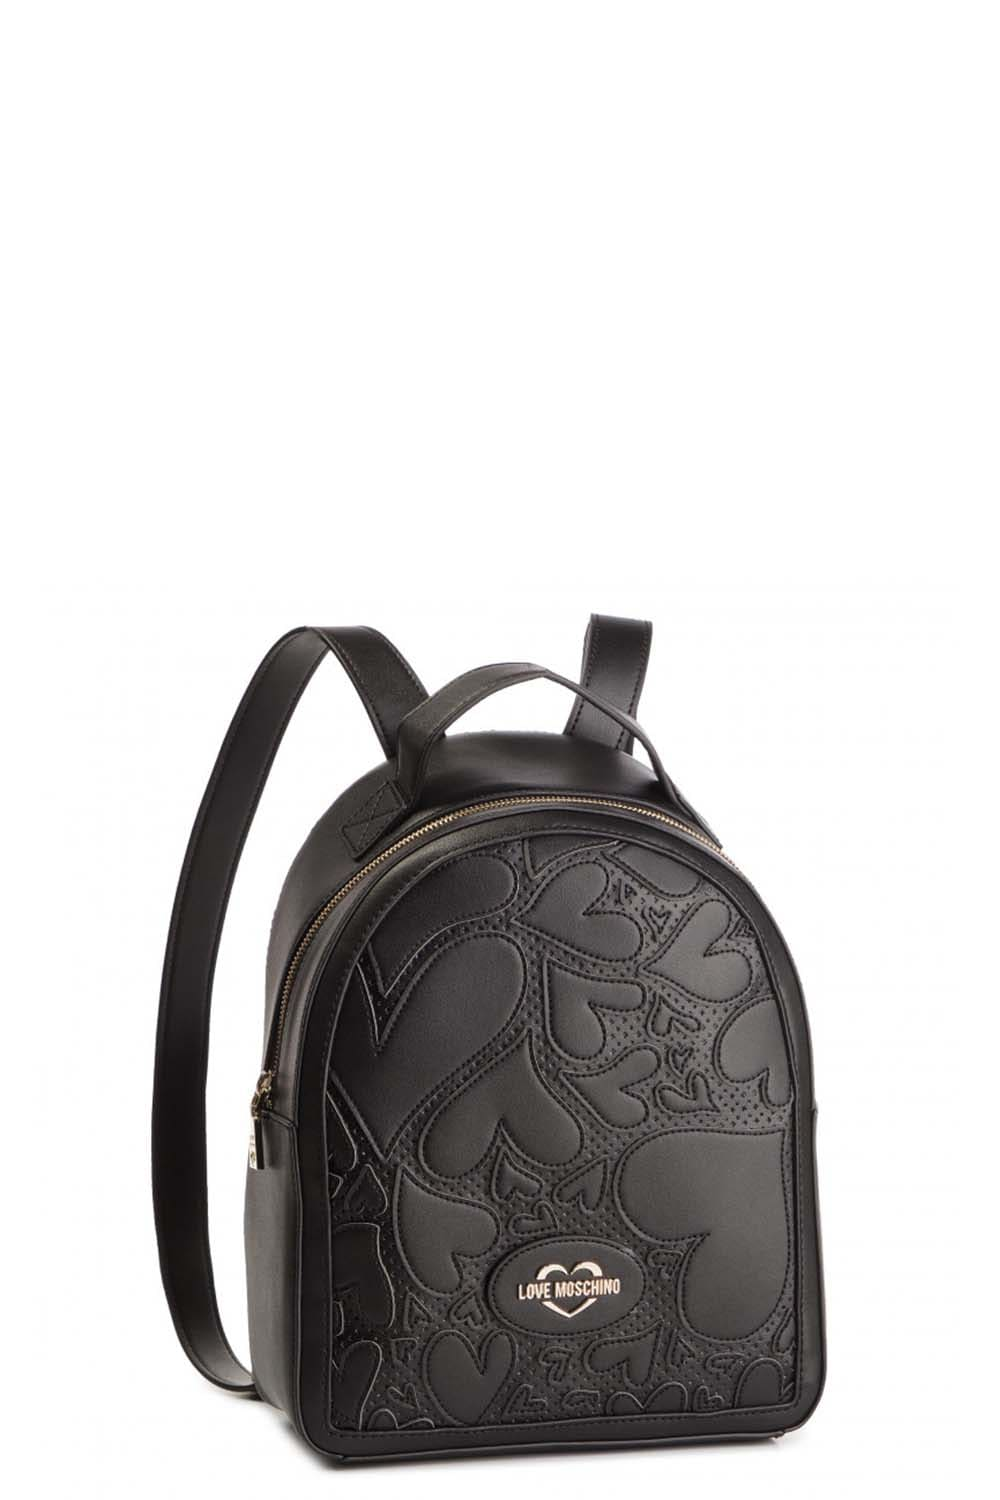 c78fc1a735 Backpack Love Moschino 019977